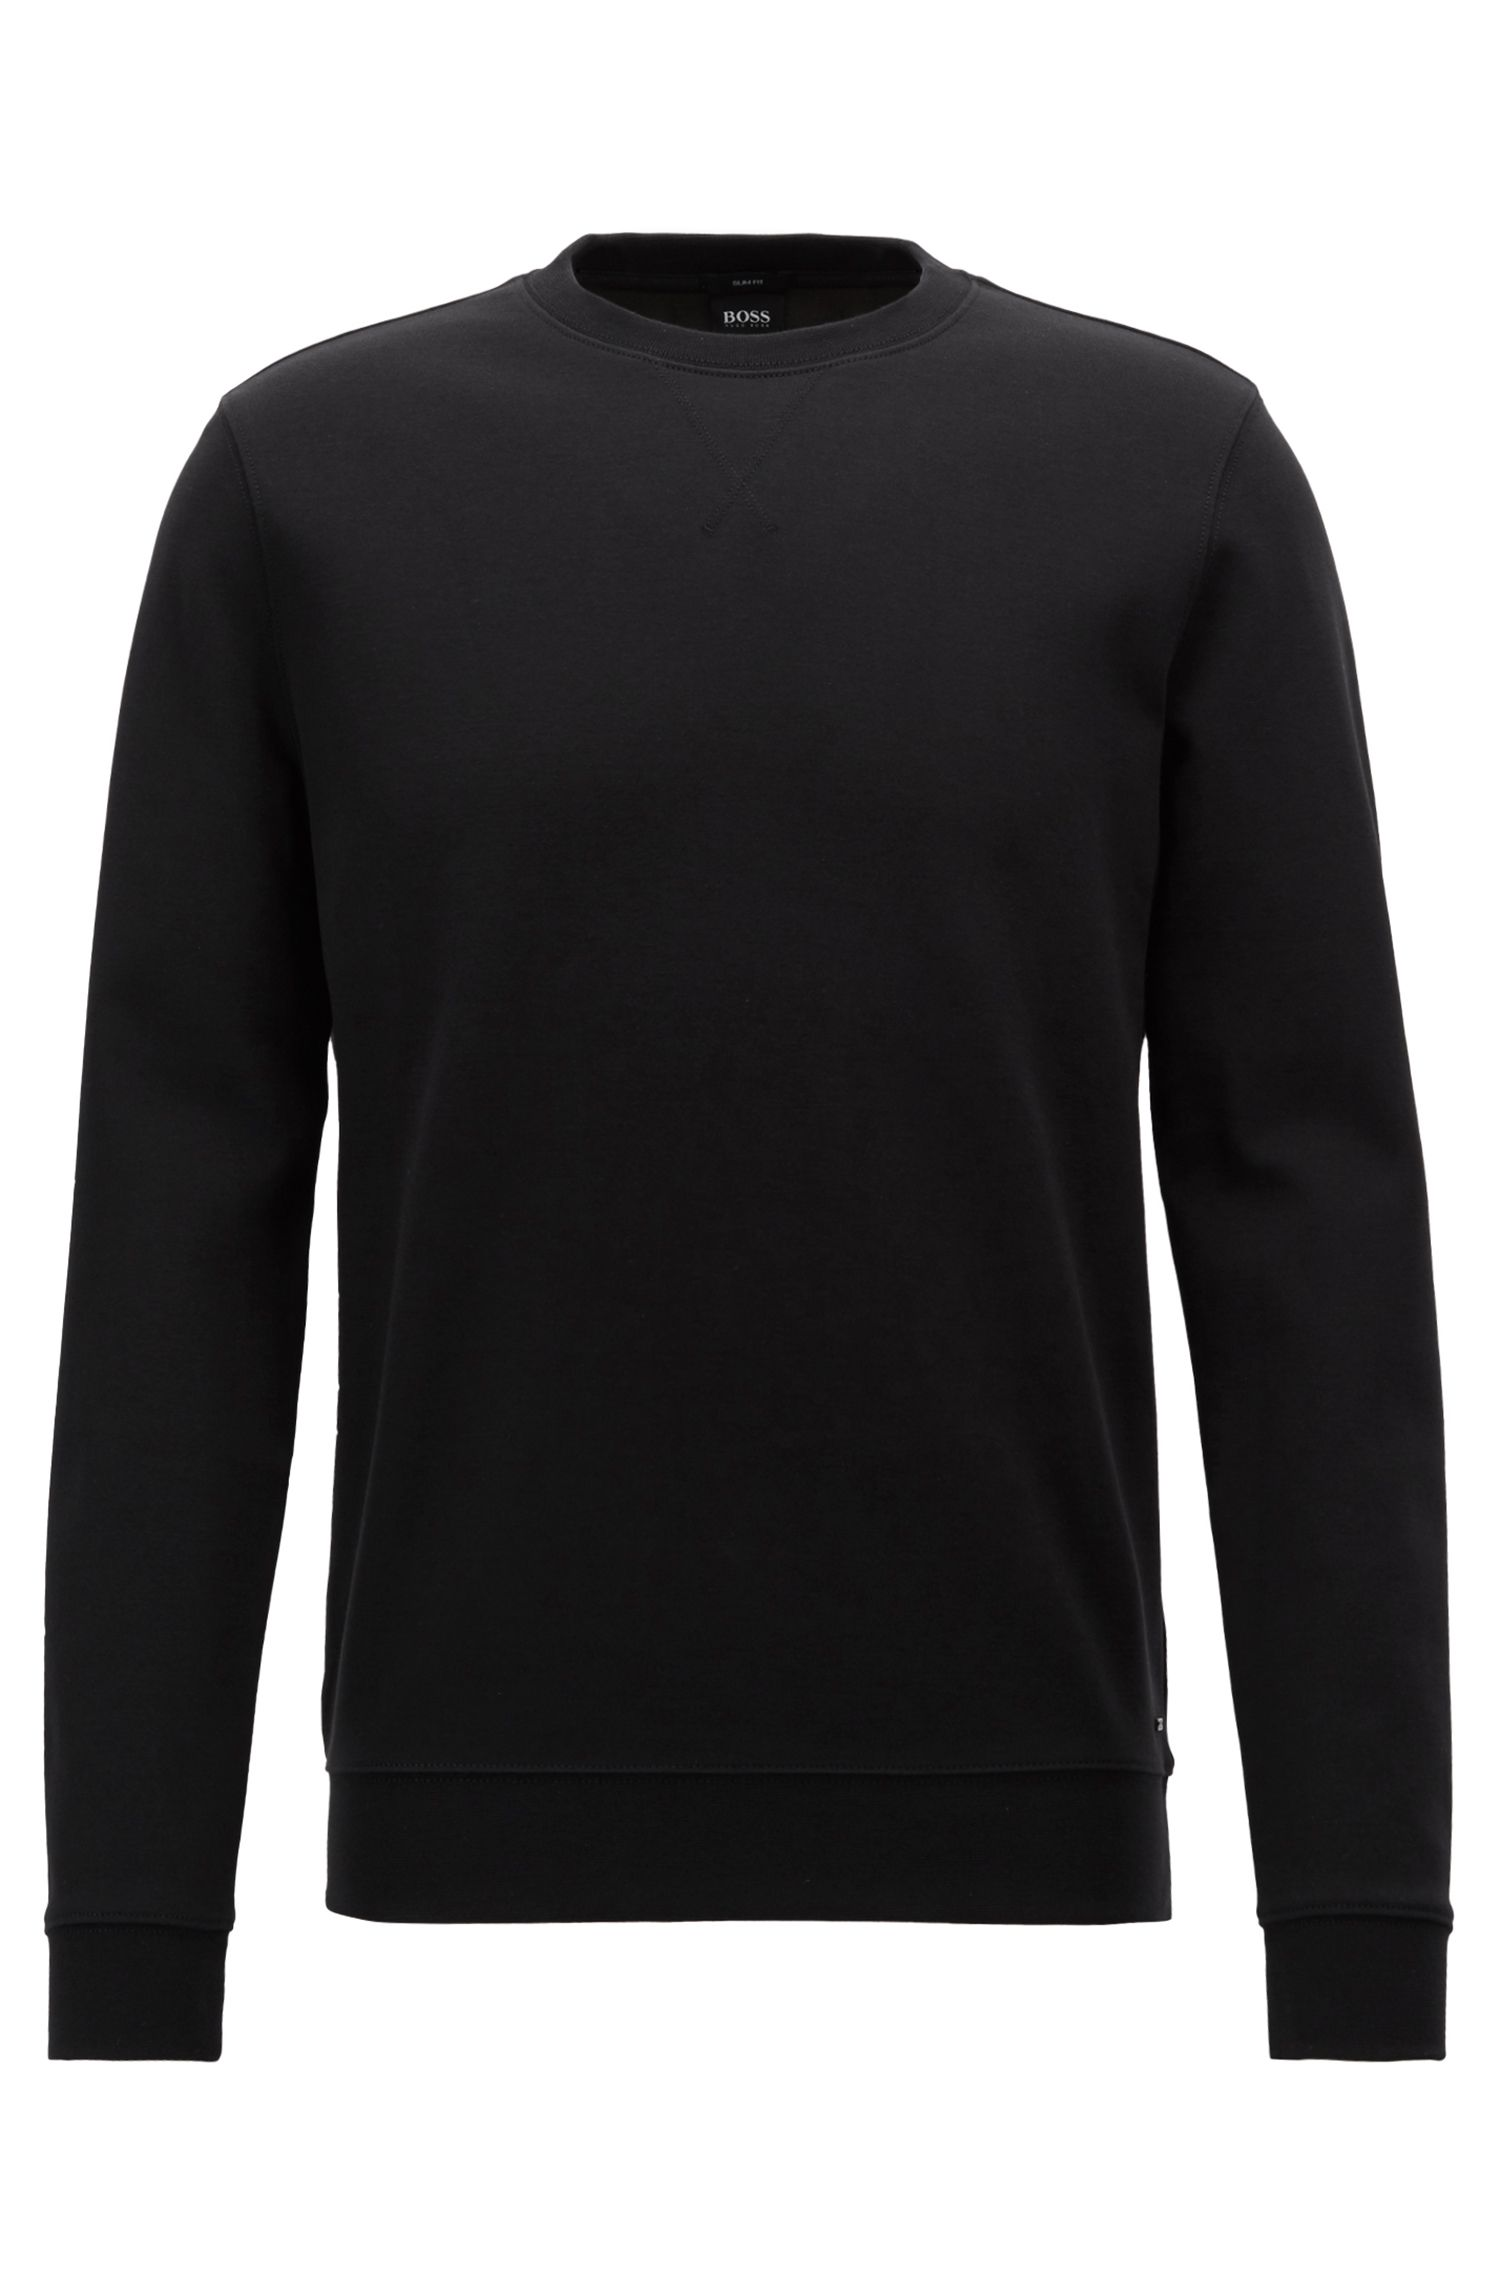 Slim-fit sweatshirt in a double-faced cotton blend, Black